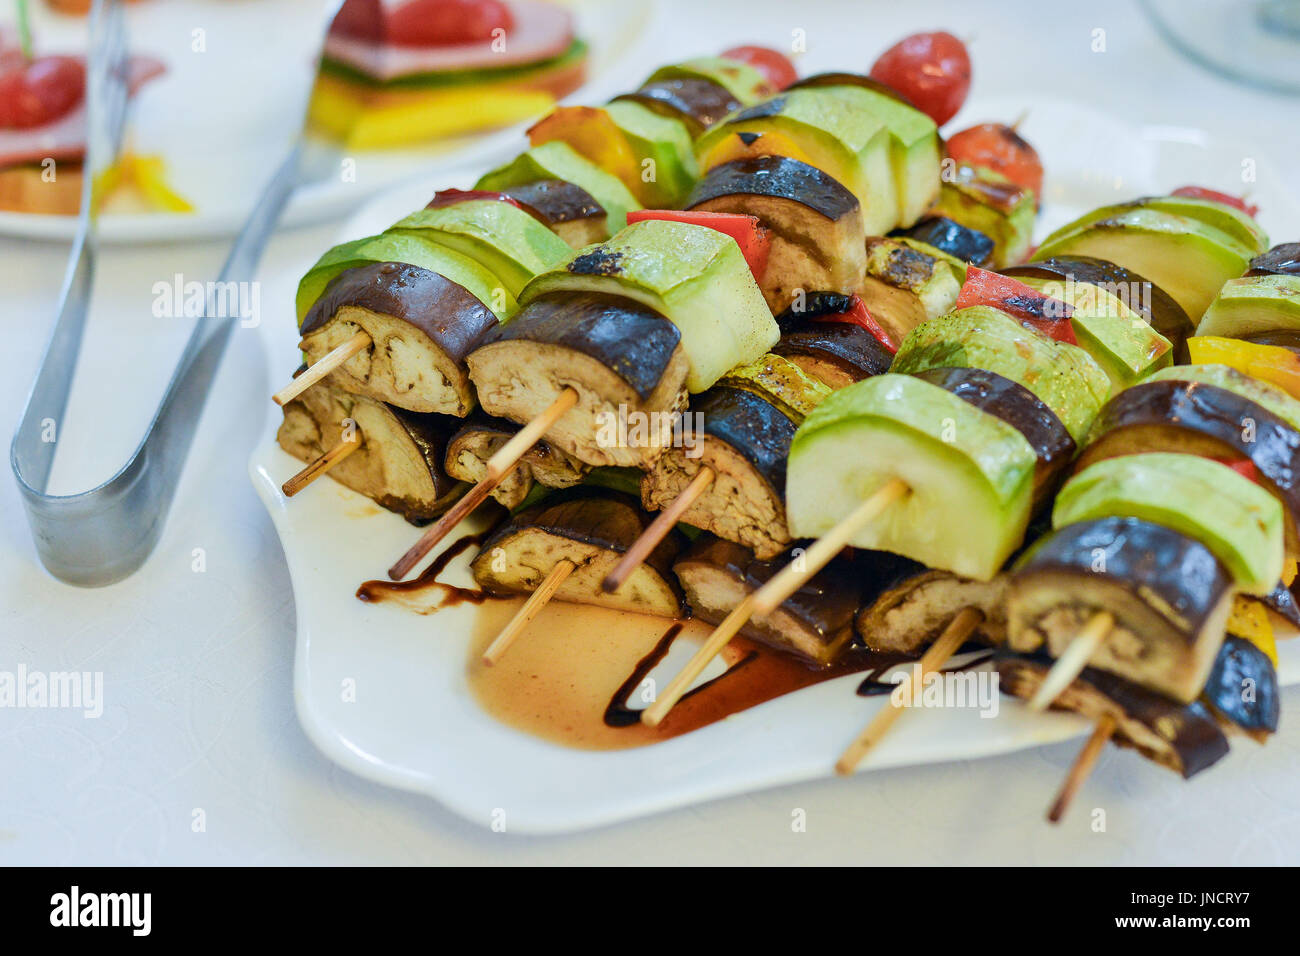 catering canapes food - Stock Image